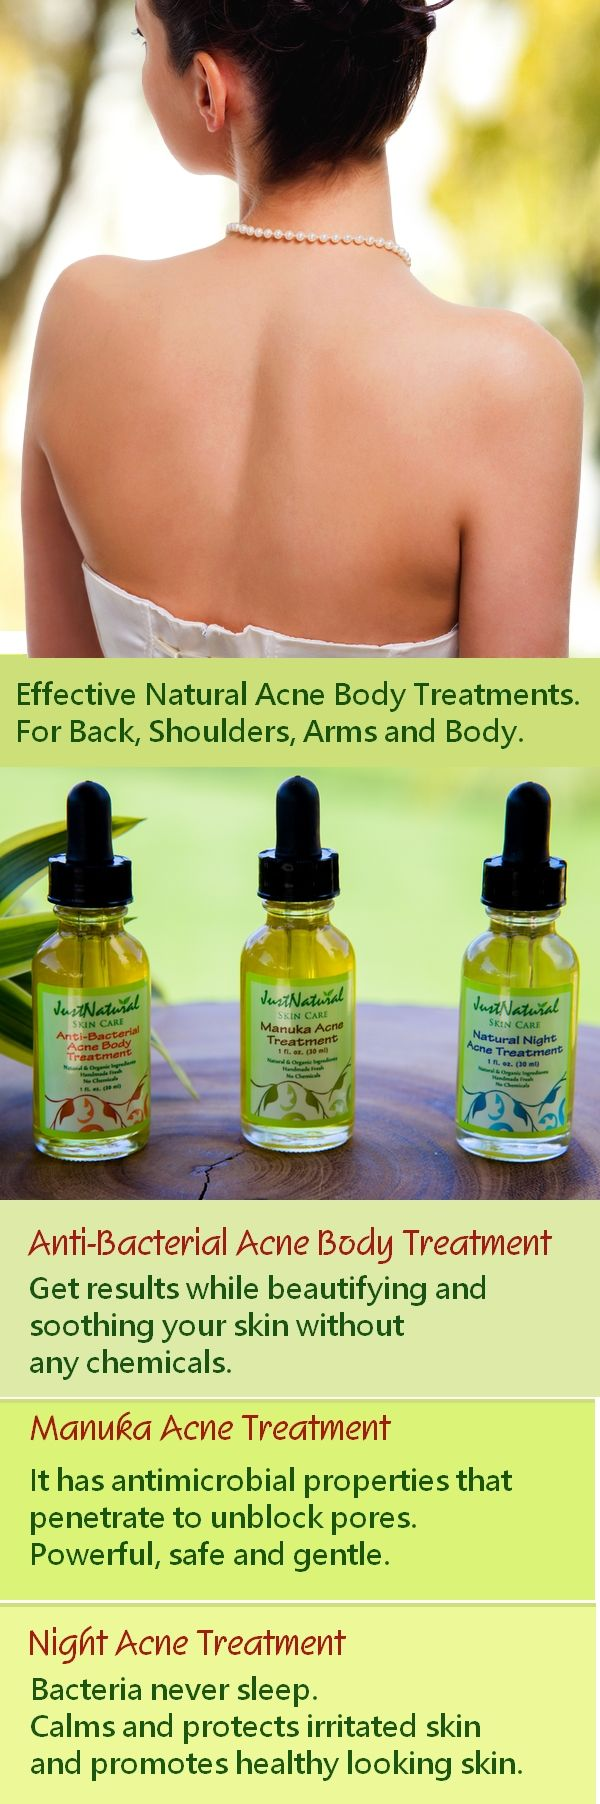 Many acne products have chemicals that are not safe and can have side effects ranging from allergies, reddish itchy skin, inflammation and irritation. These can worsen your acne. These natural formulas are the safest and the most powerful healing and renewing for beautiful healthy clear skin without side effects. Learn more at http://www.justnaturalskincare.com/9/acne/-anti_bacterial_serum.html